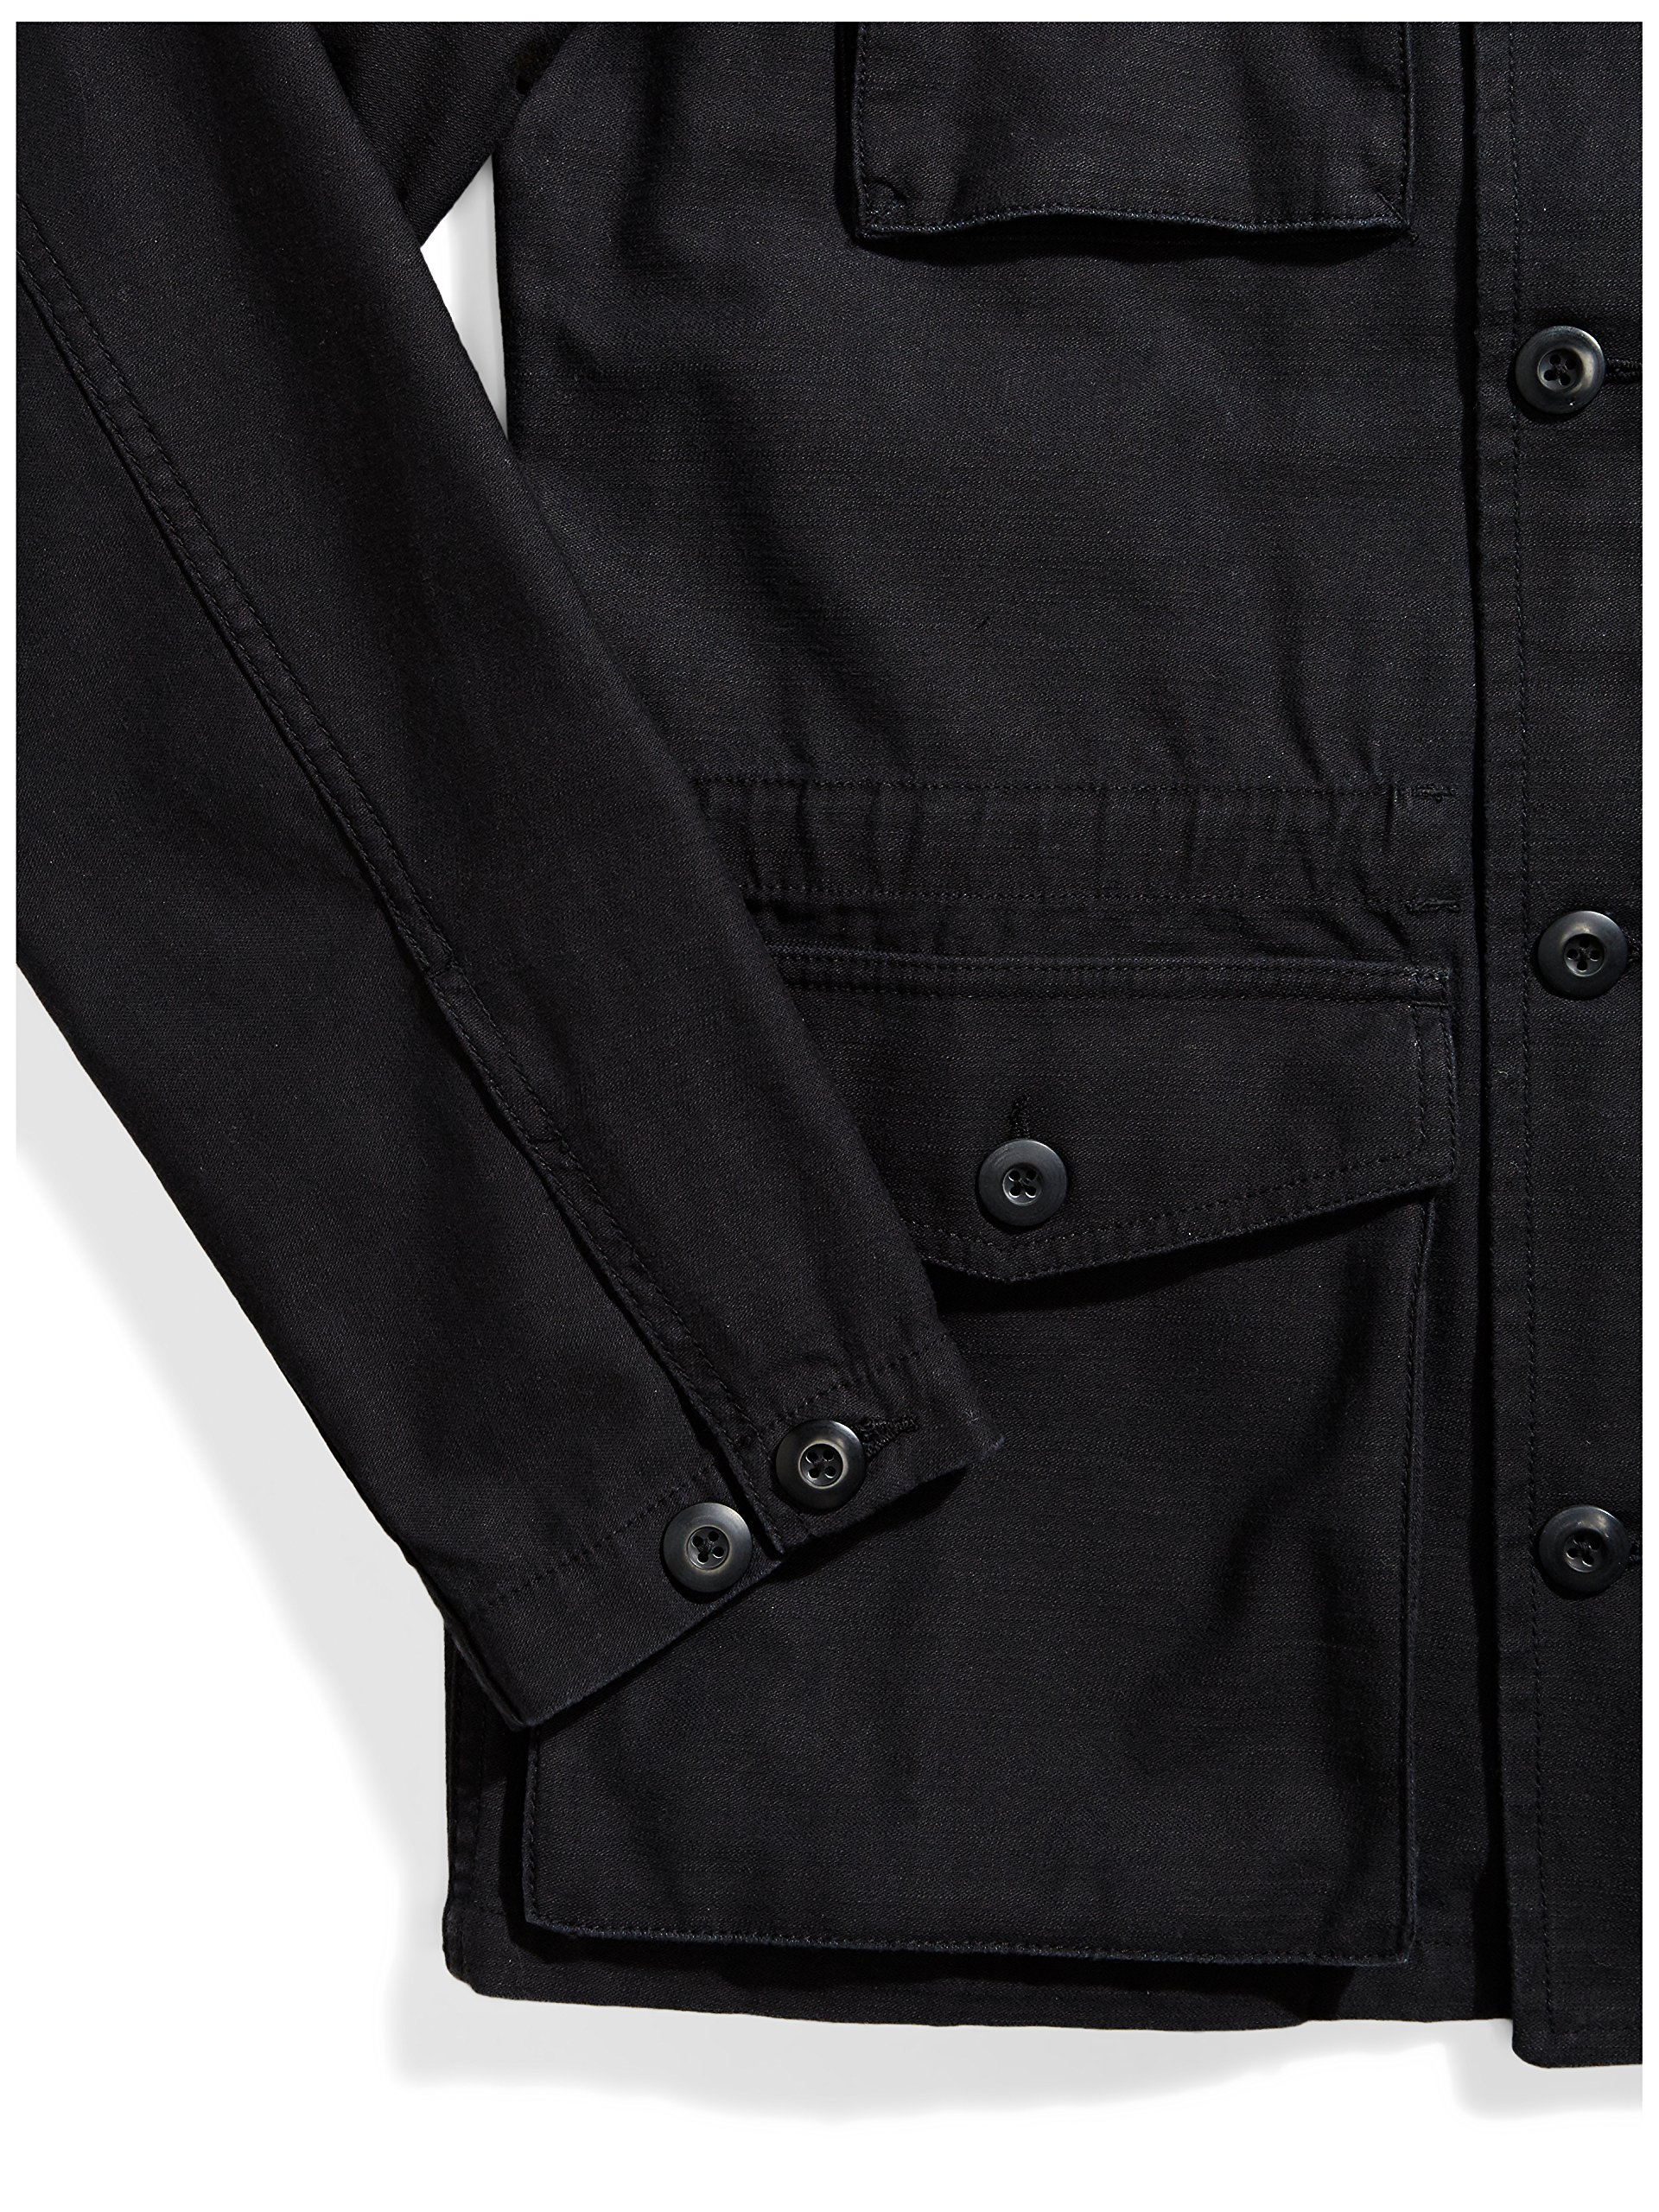 Goodthreads Men's 4-Pocket Military Jacket, Caviar/Black, Large by Goodthreads (Image #6)